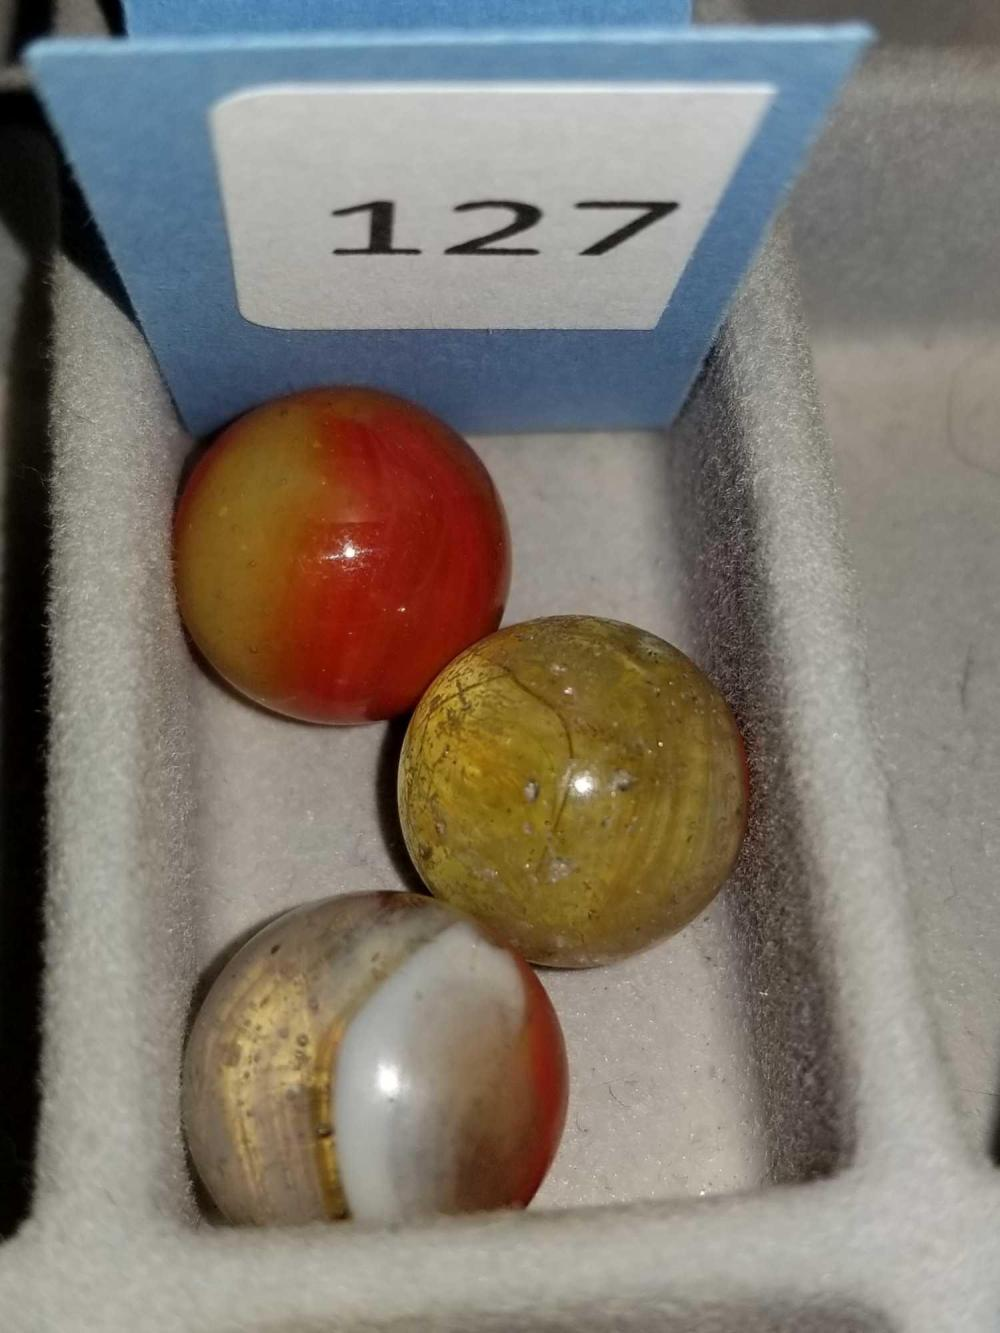 AKRO AGATE OXBLOOD MARBLES - 3 ITEMS